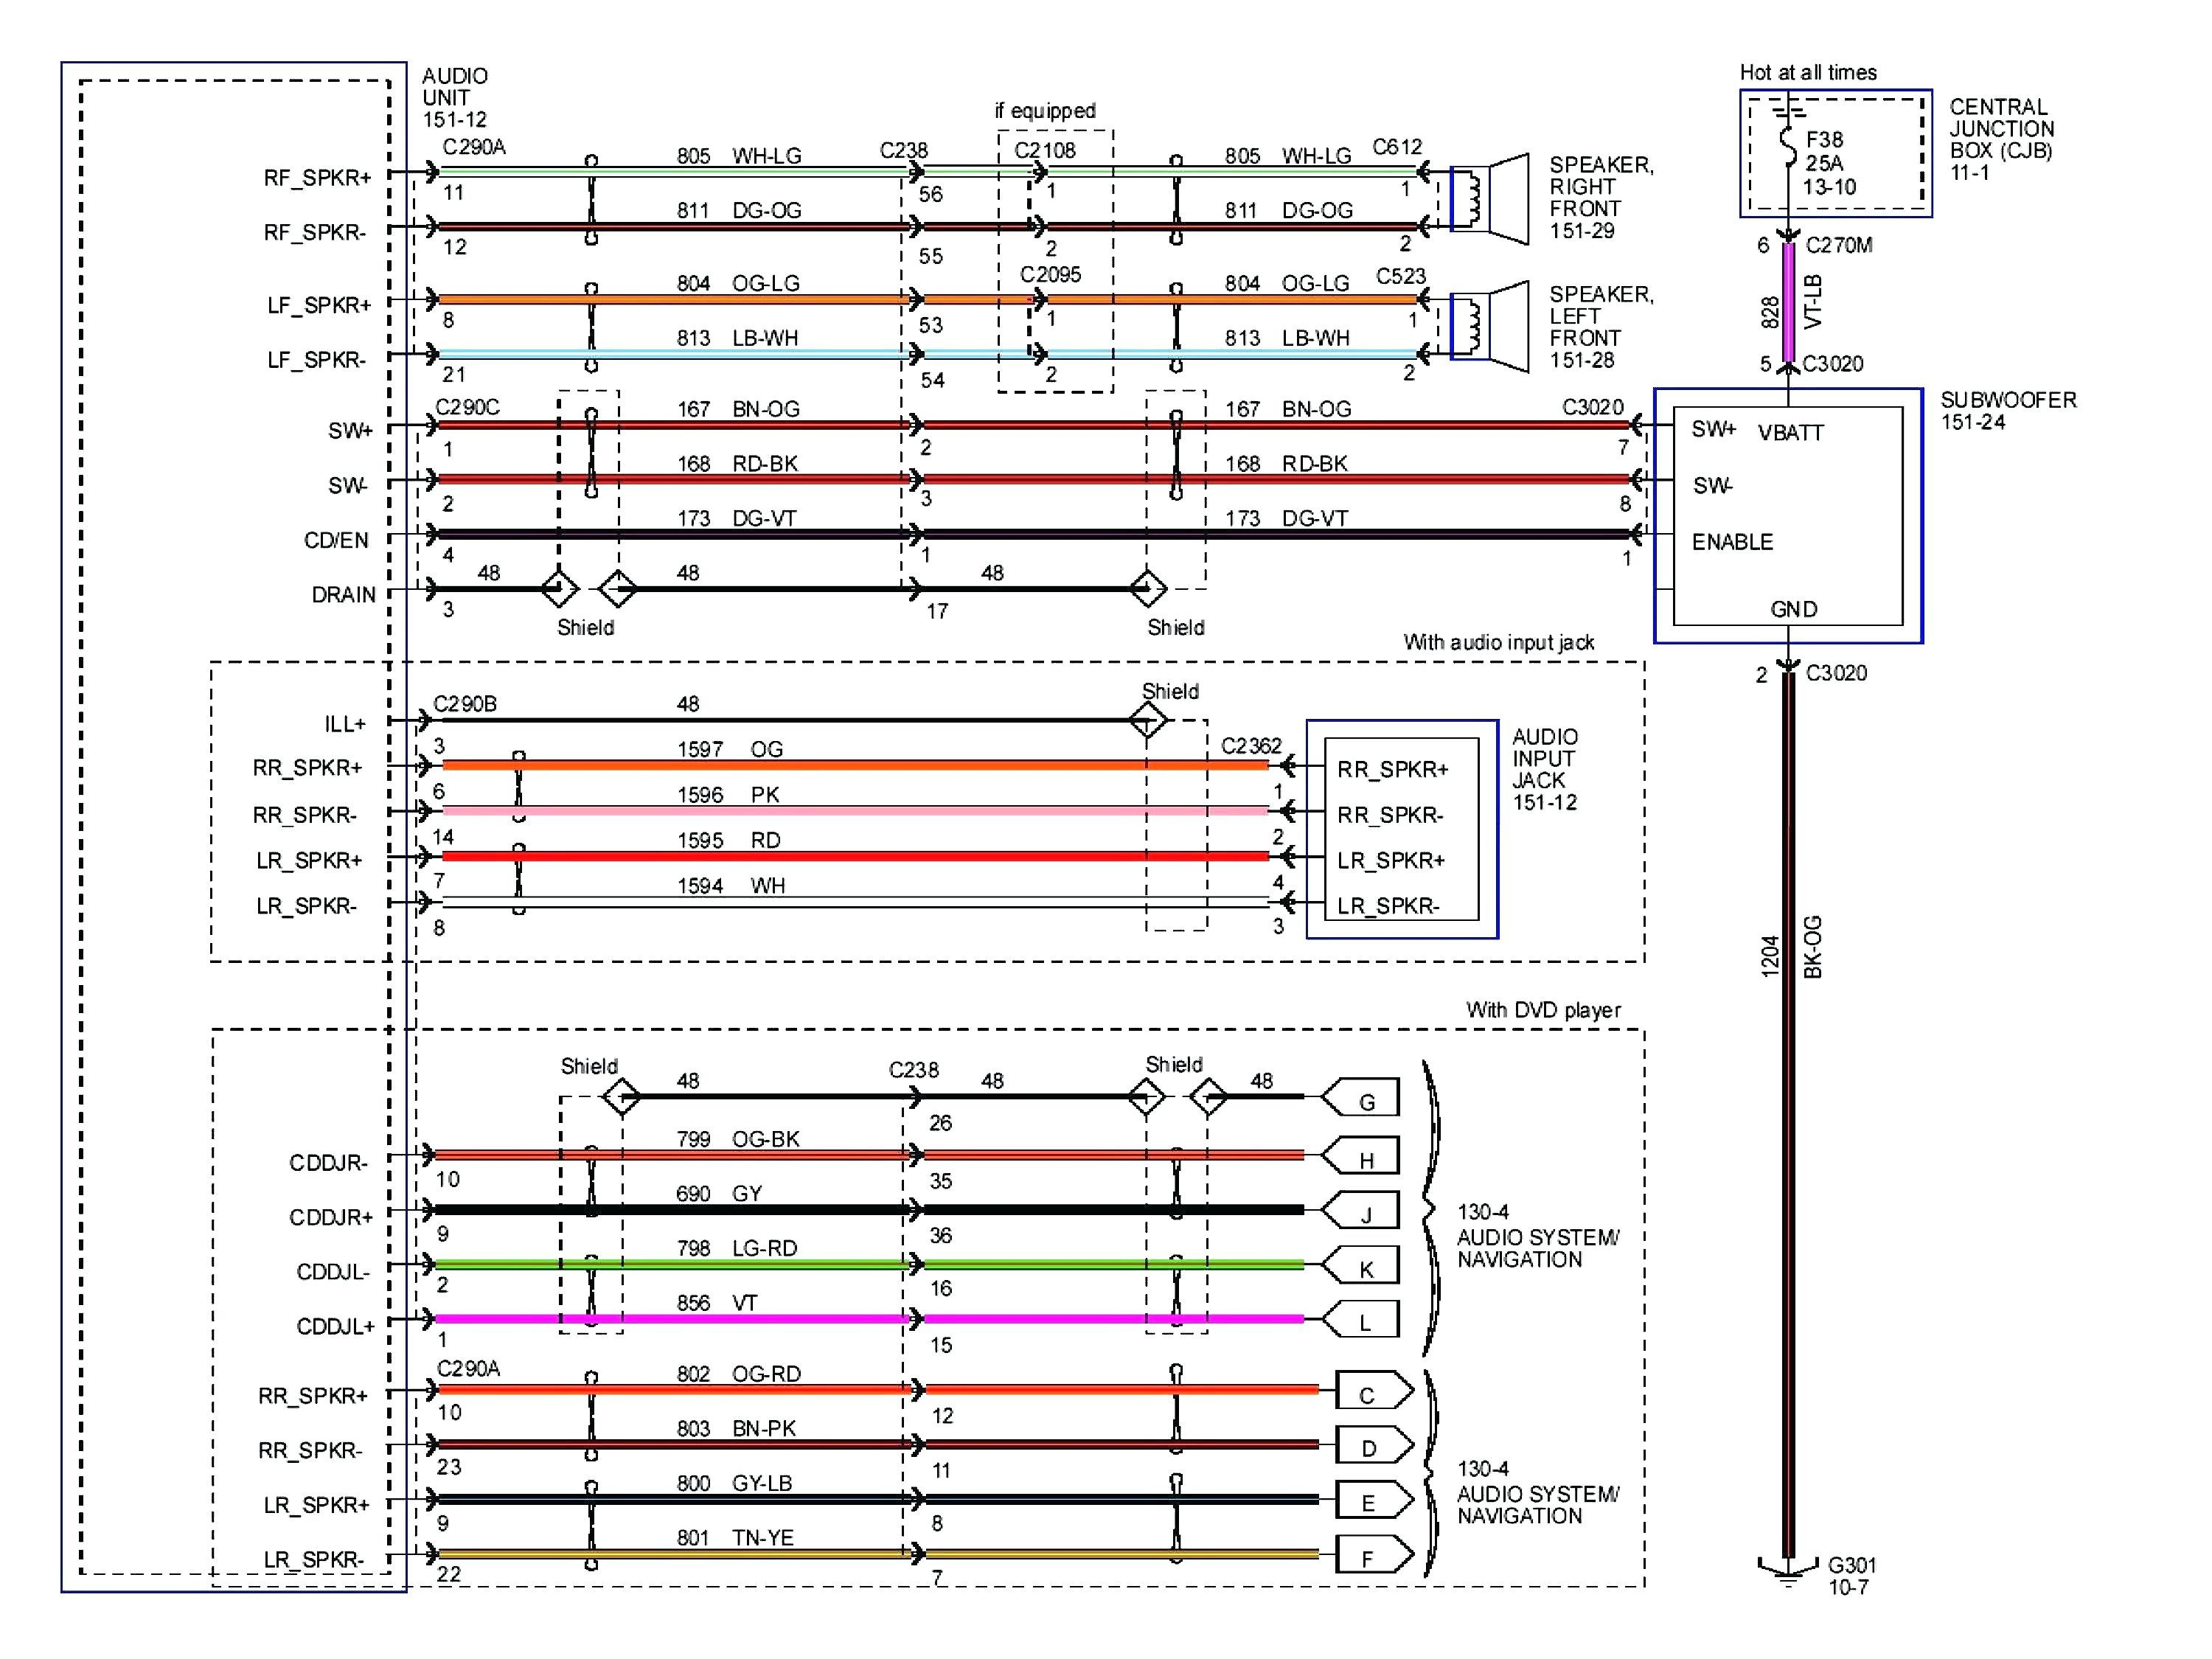 98 Blazer Radio Wiring Diagram - wiring diagram standard-browse -  standard-browse.albergoinsicilia.it | 98 Chevy Radio Wiring Diagram |  | standard-browse.albergoinsicilia.it